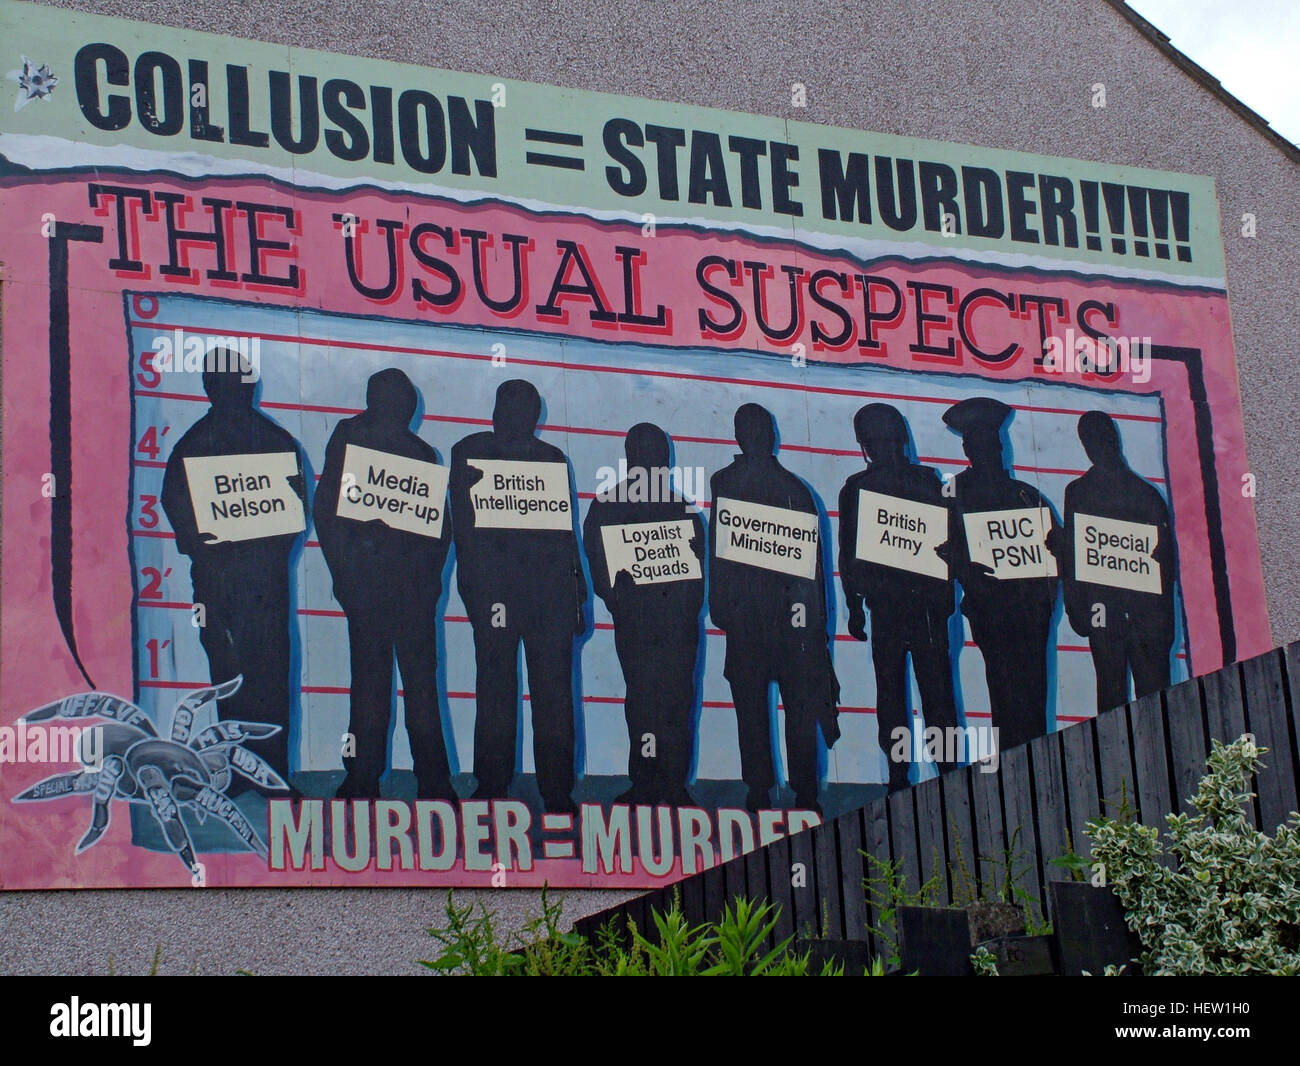 Belfast Falls Rd Republican Mural- Collusion State Murder The Usual Suspects - Stock Image